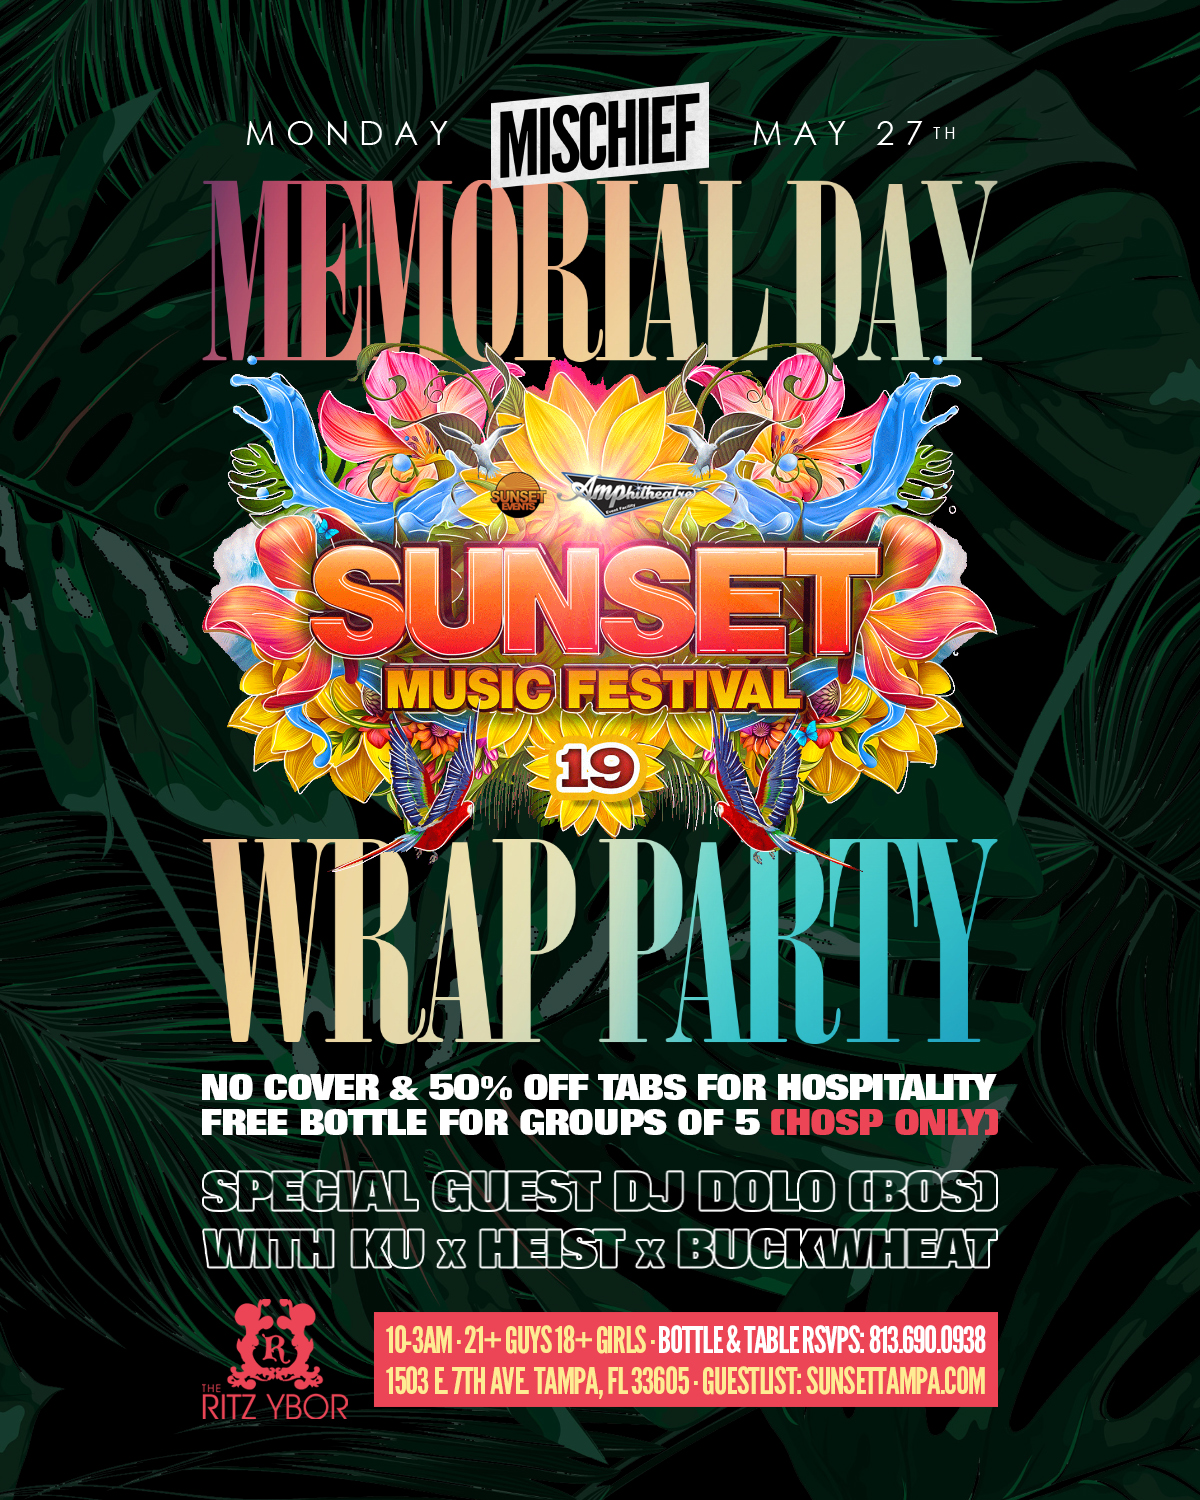 Memorial Day Wrap Party – Mischief Mondays at The RITZ Ybor – 5/27/2019